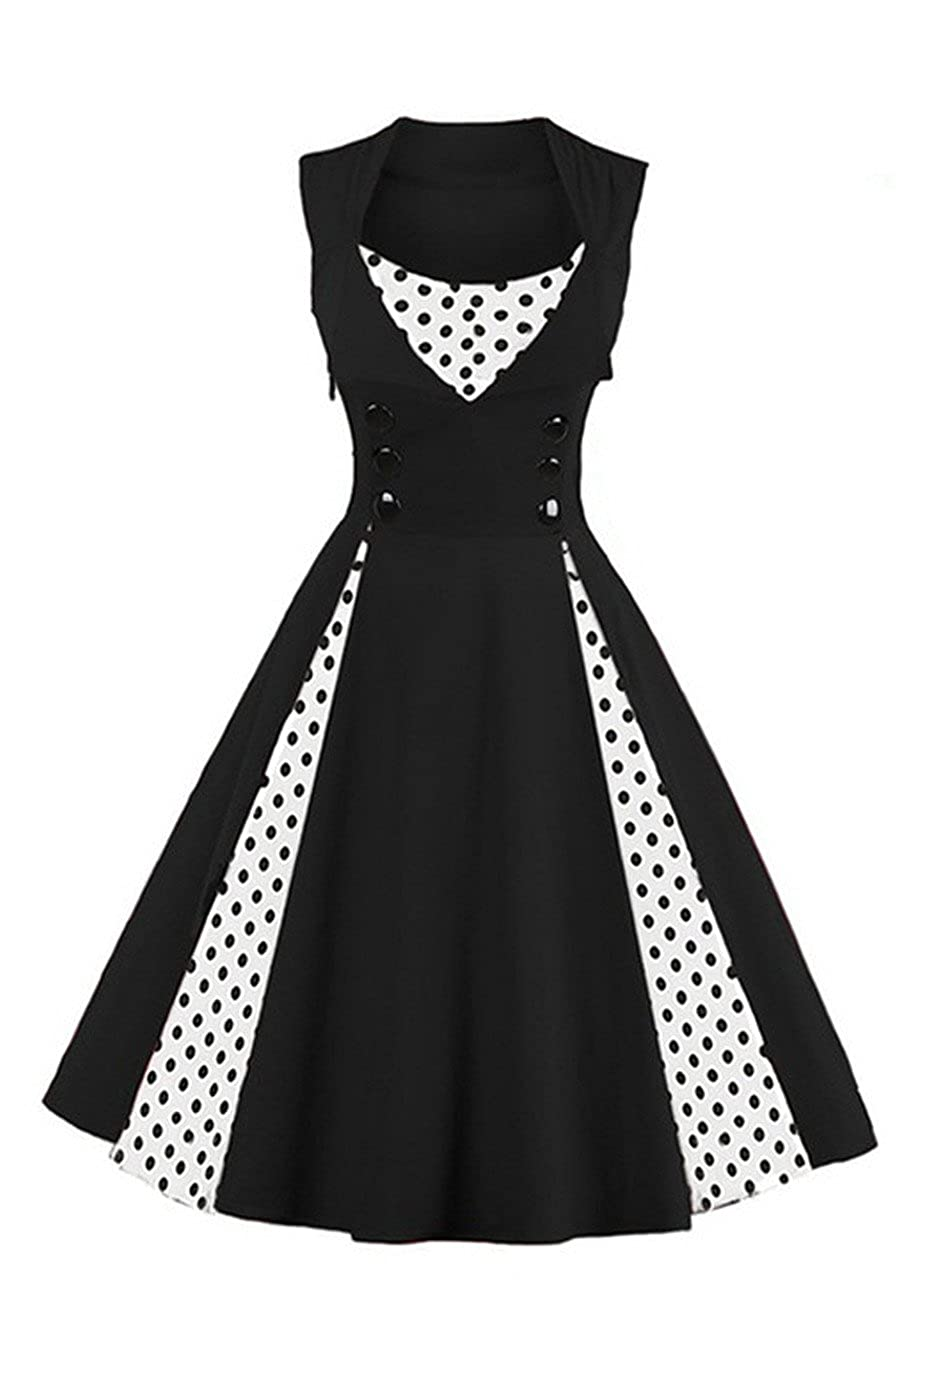 TALLA M. VERNASSA 50s Vestidos Vintage,Mujeres 1950s Vintage A-Line Rockabilly Clásico Verano Dress for Evening Party Cocktail, S-Plus Size 4XL 1357-puntos Negros